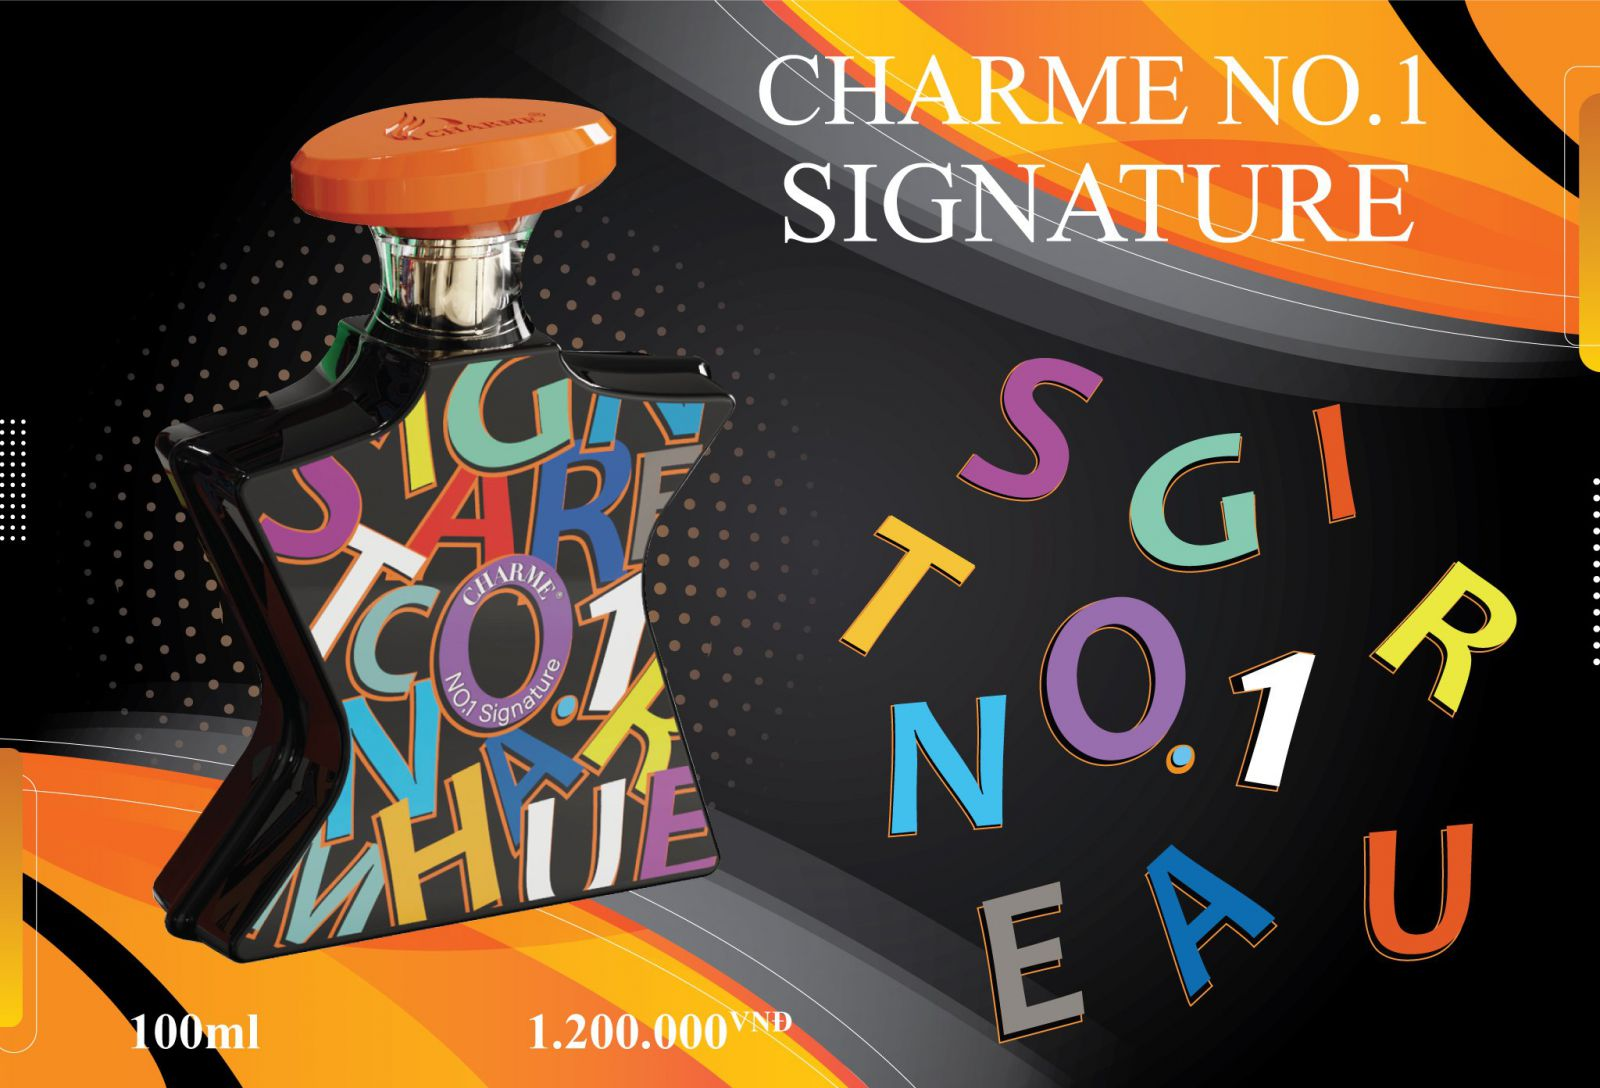 Nước Hoa Charme No.1 Signature 100ml